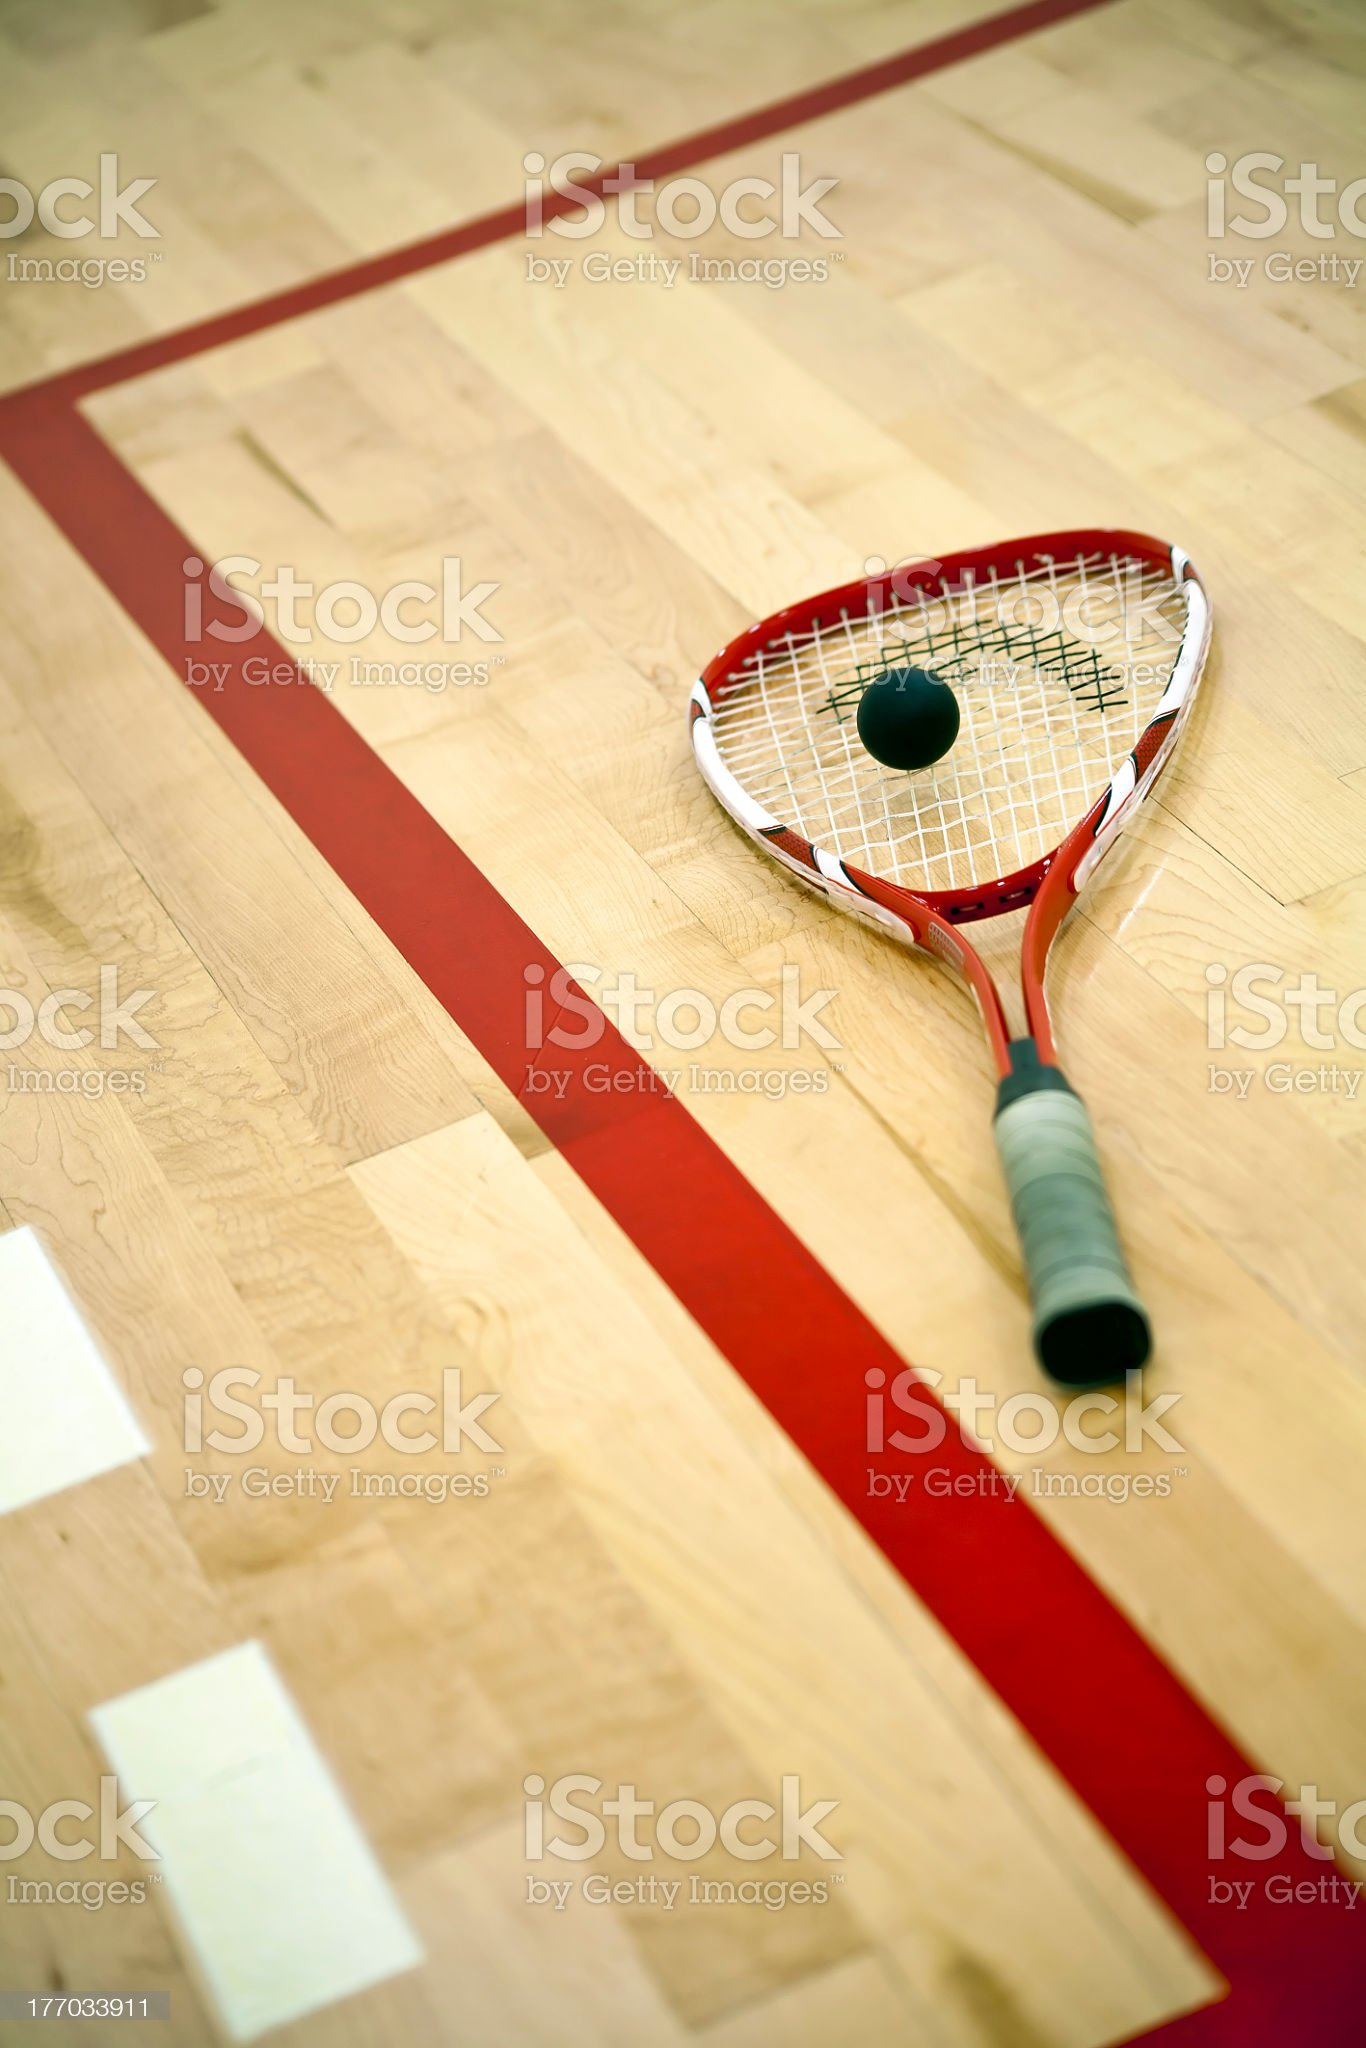 A squash racket on a court with a ball royalty-free stock photo